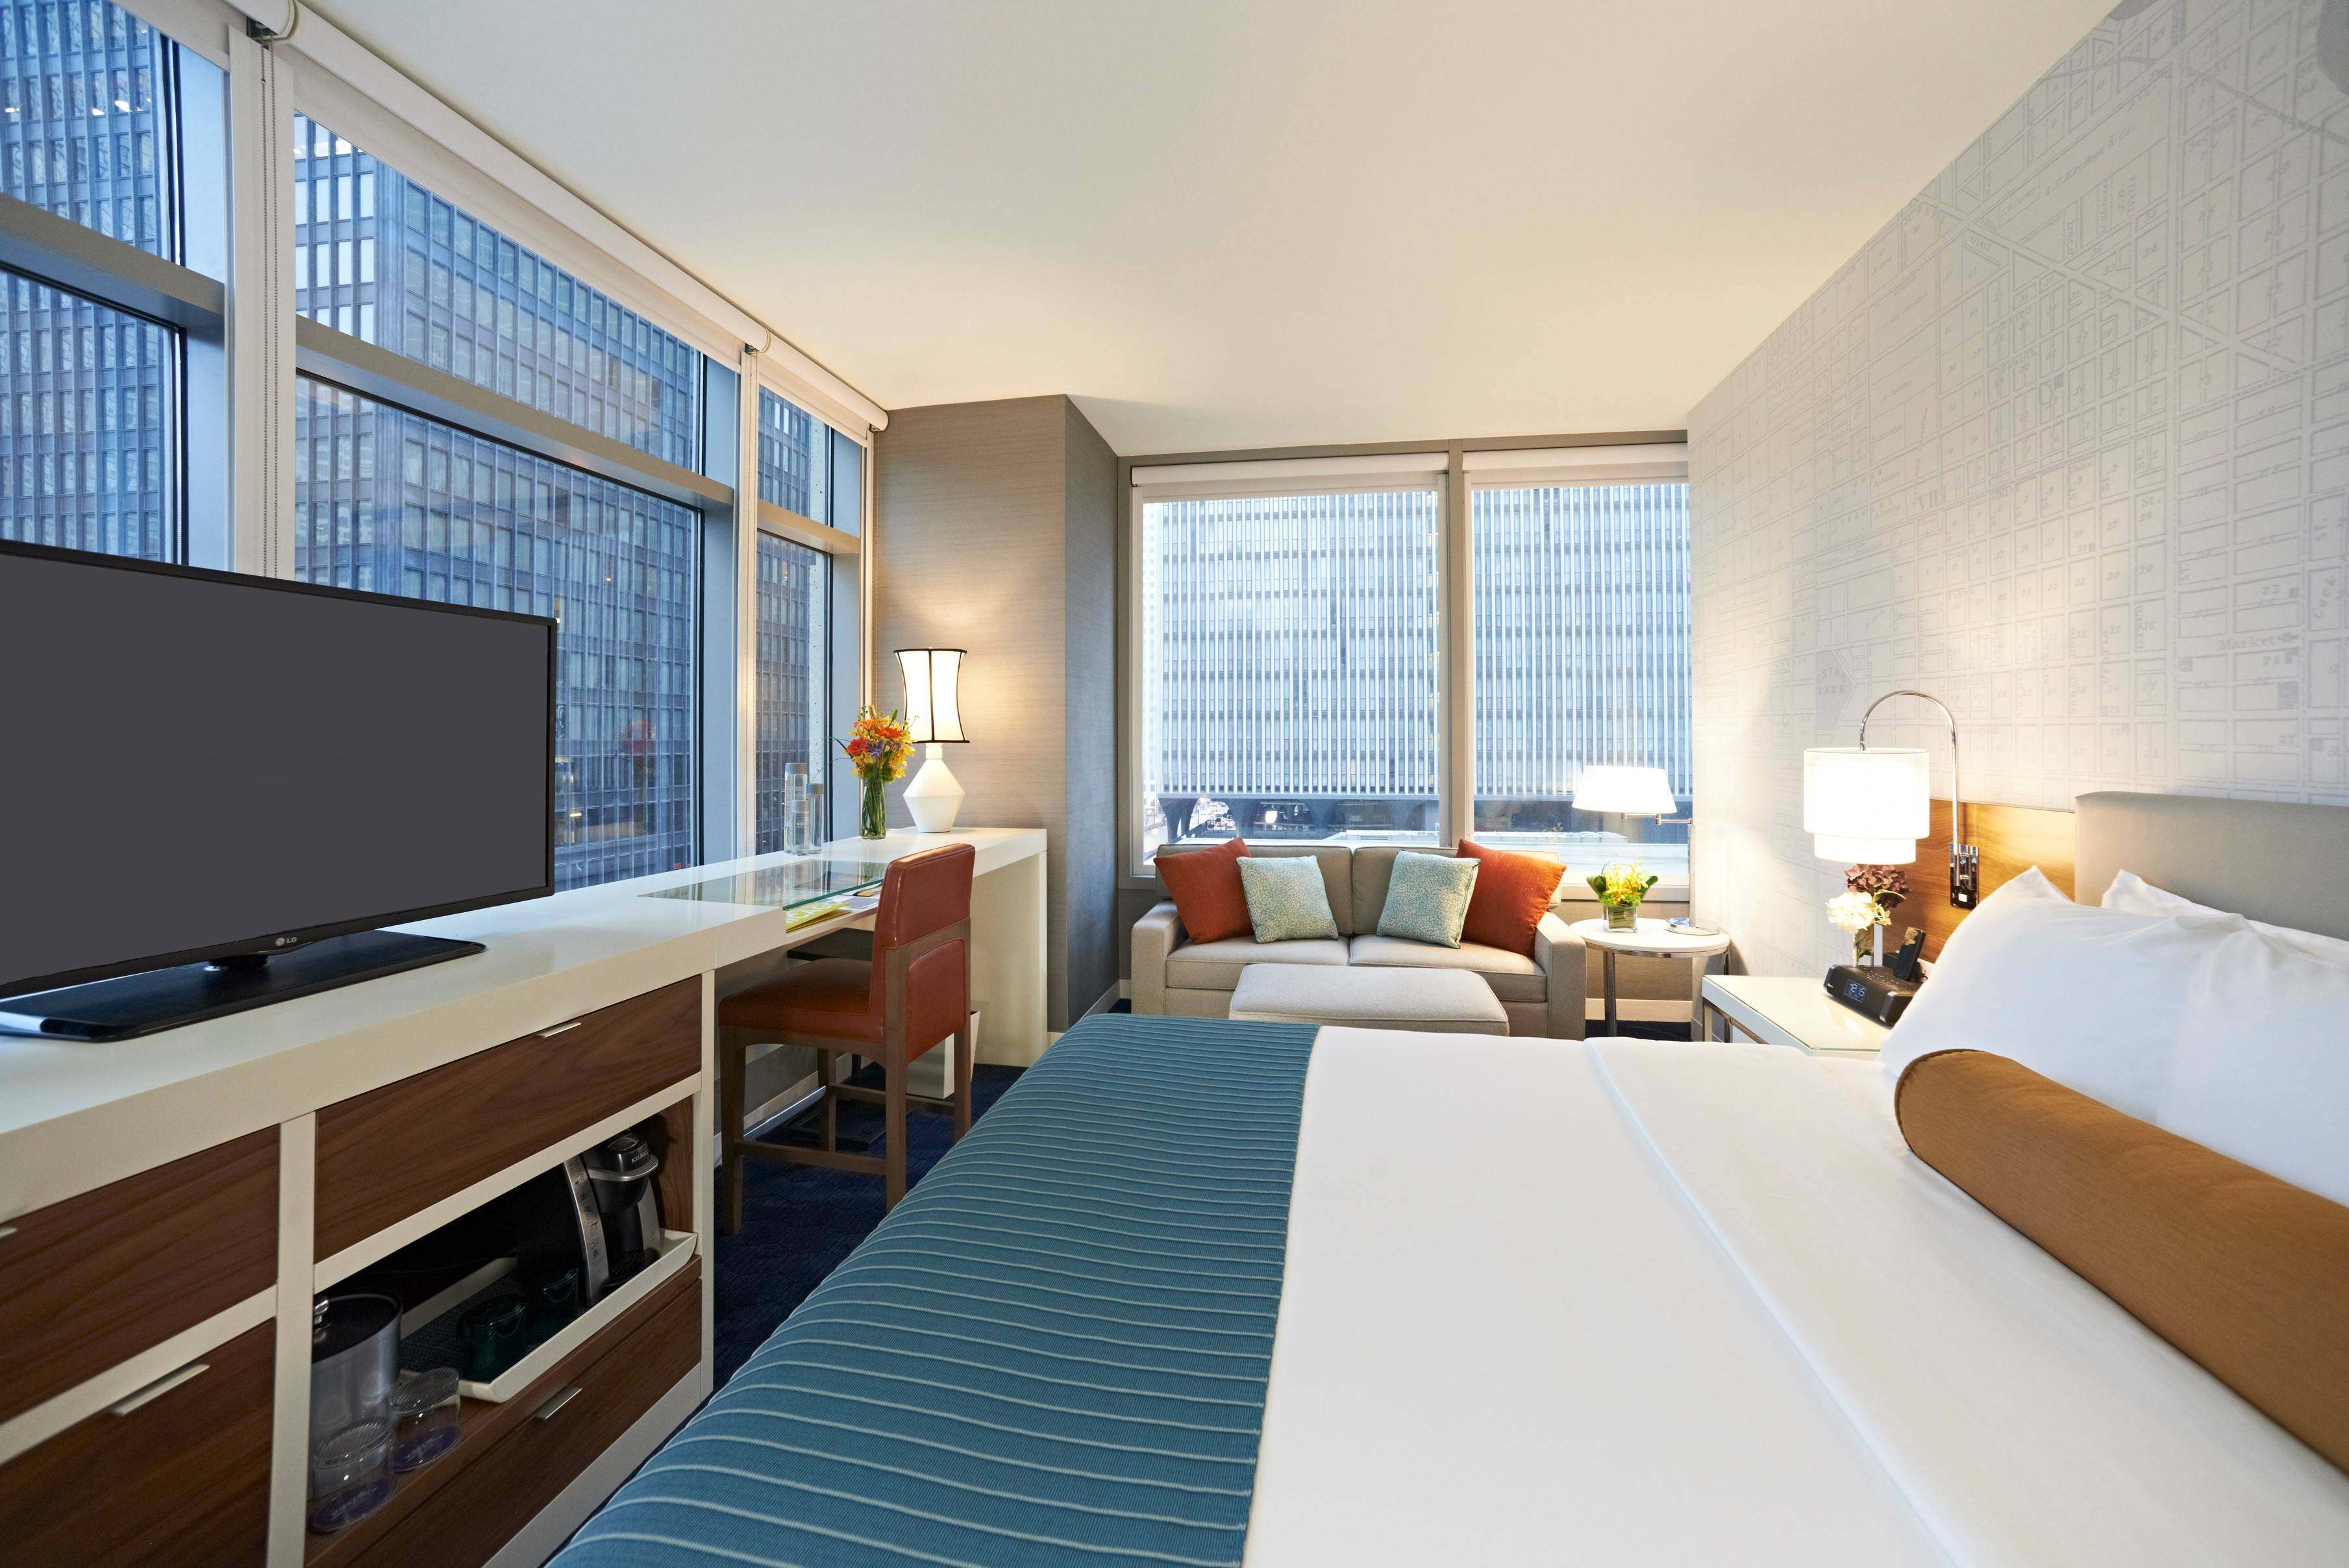 The boutique Kinzie Hotel offers cool packages this summer for bike riders, families, club scenesters, and Lollapalooza goers.